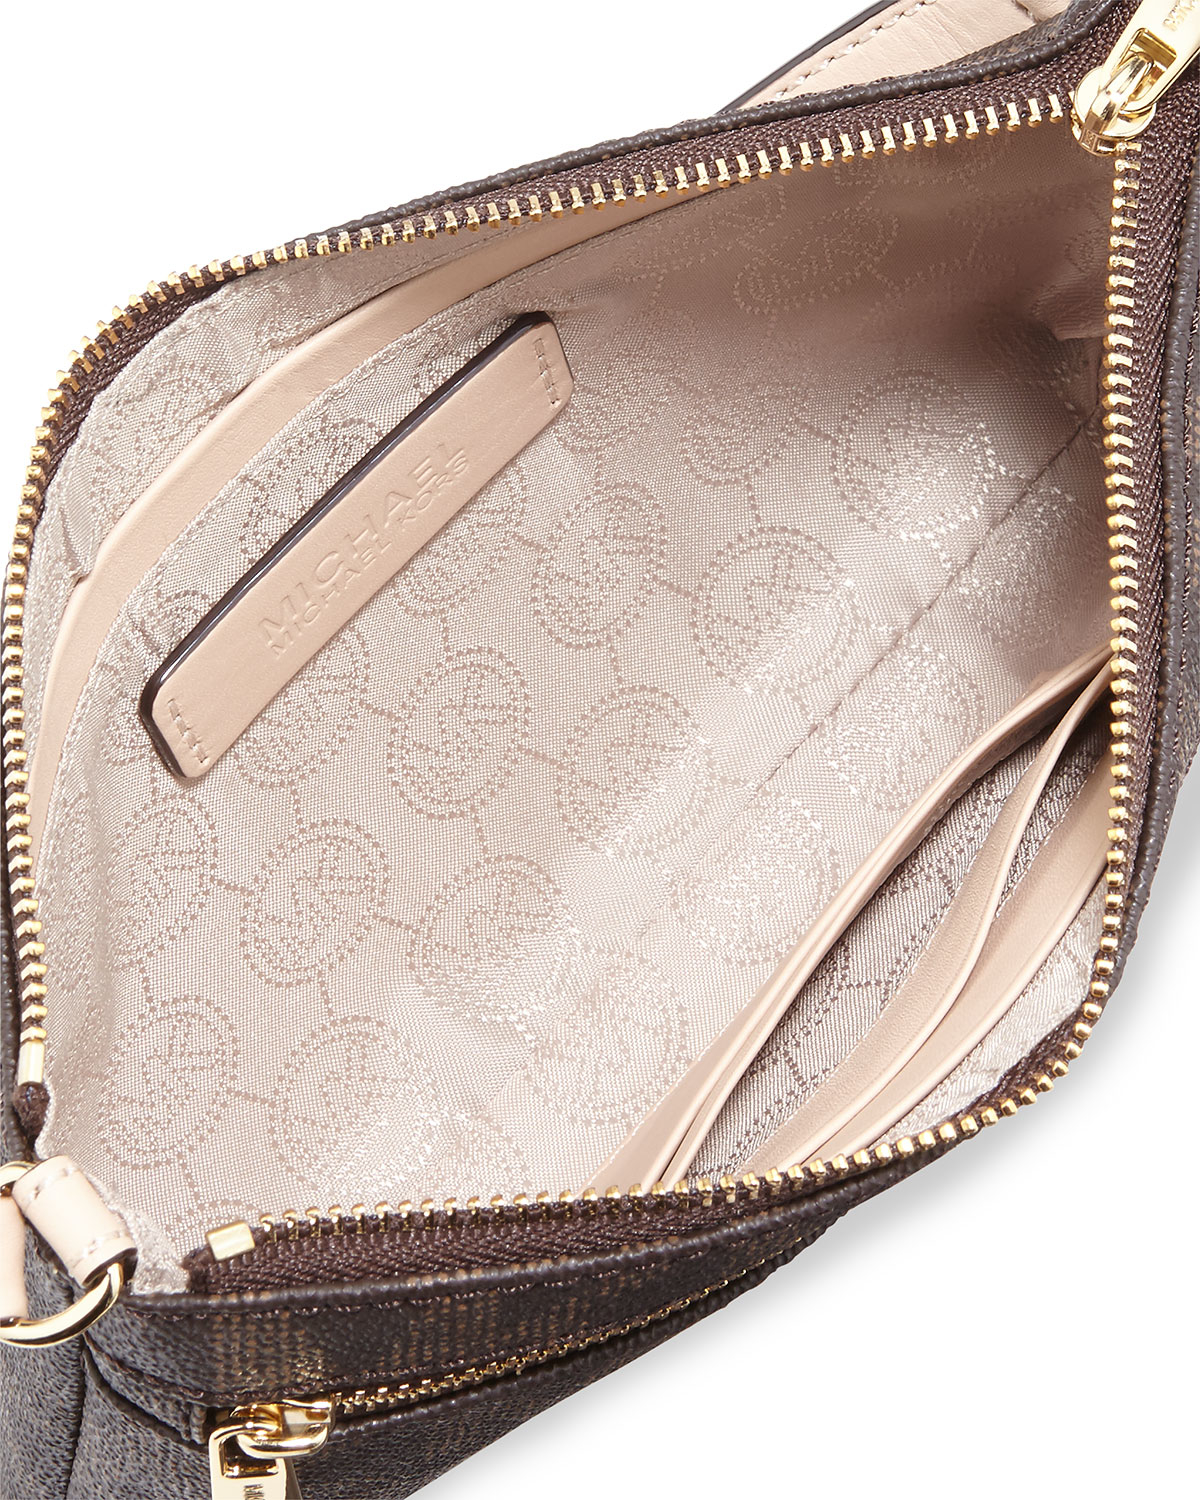 23a132c301c4 Gallery. Previously sold at: Neiman Marcus · Women's Michael By Michael  Kors Jet Set